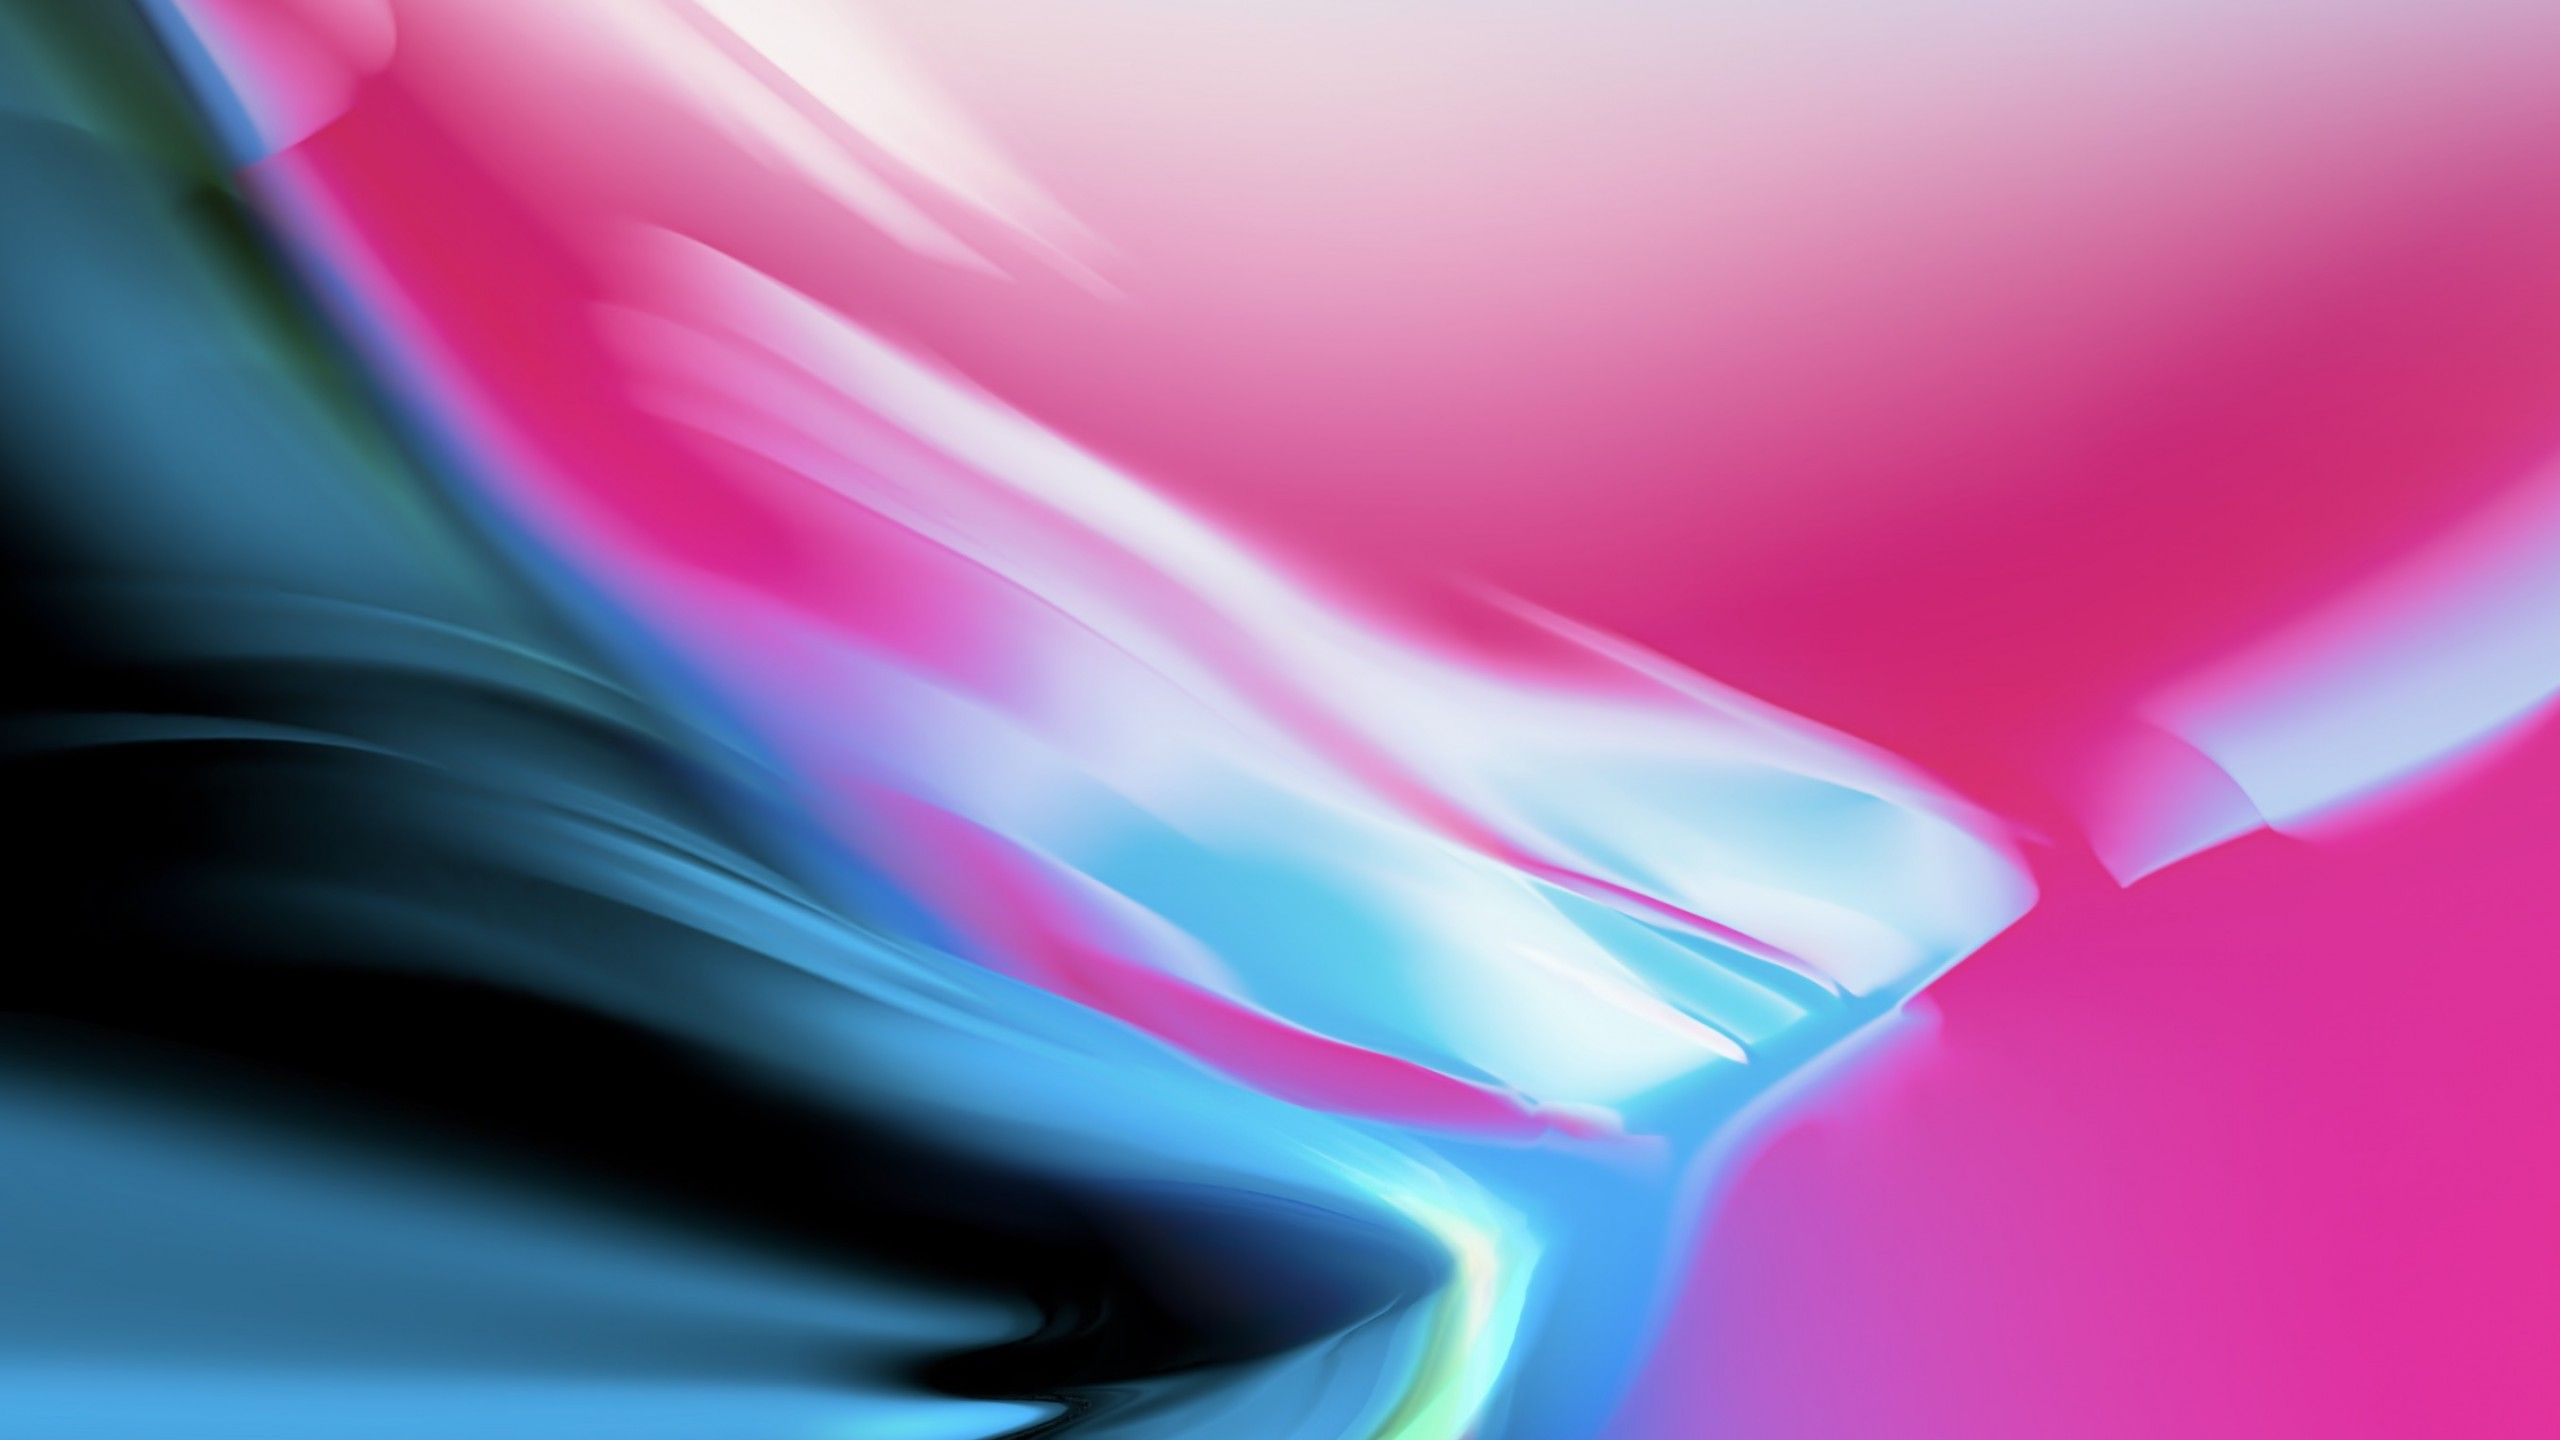 Colors Iphone 4k Wallpapers Top Free Colors Iphone 4k Backgrounds Wallpaperaccess